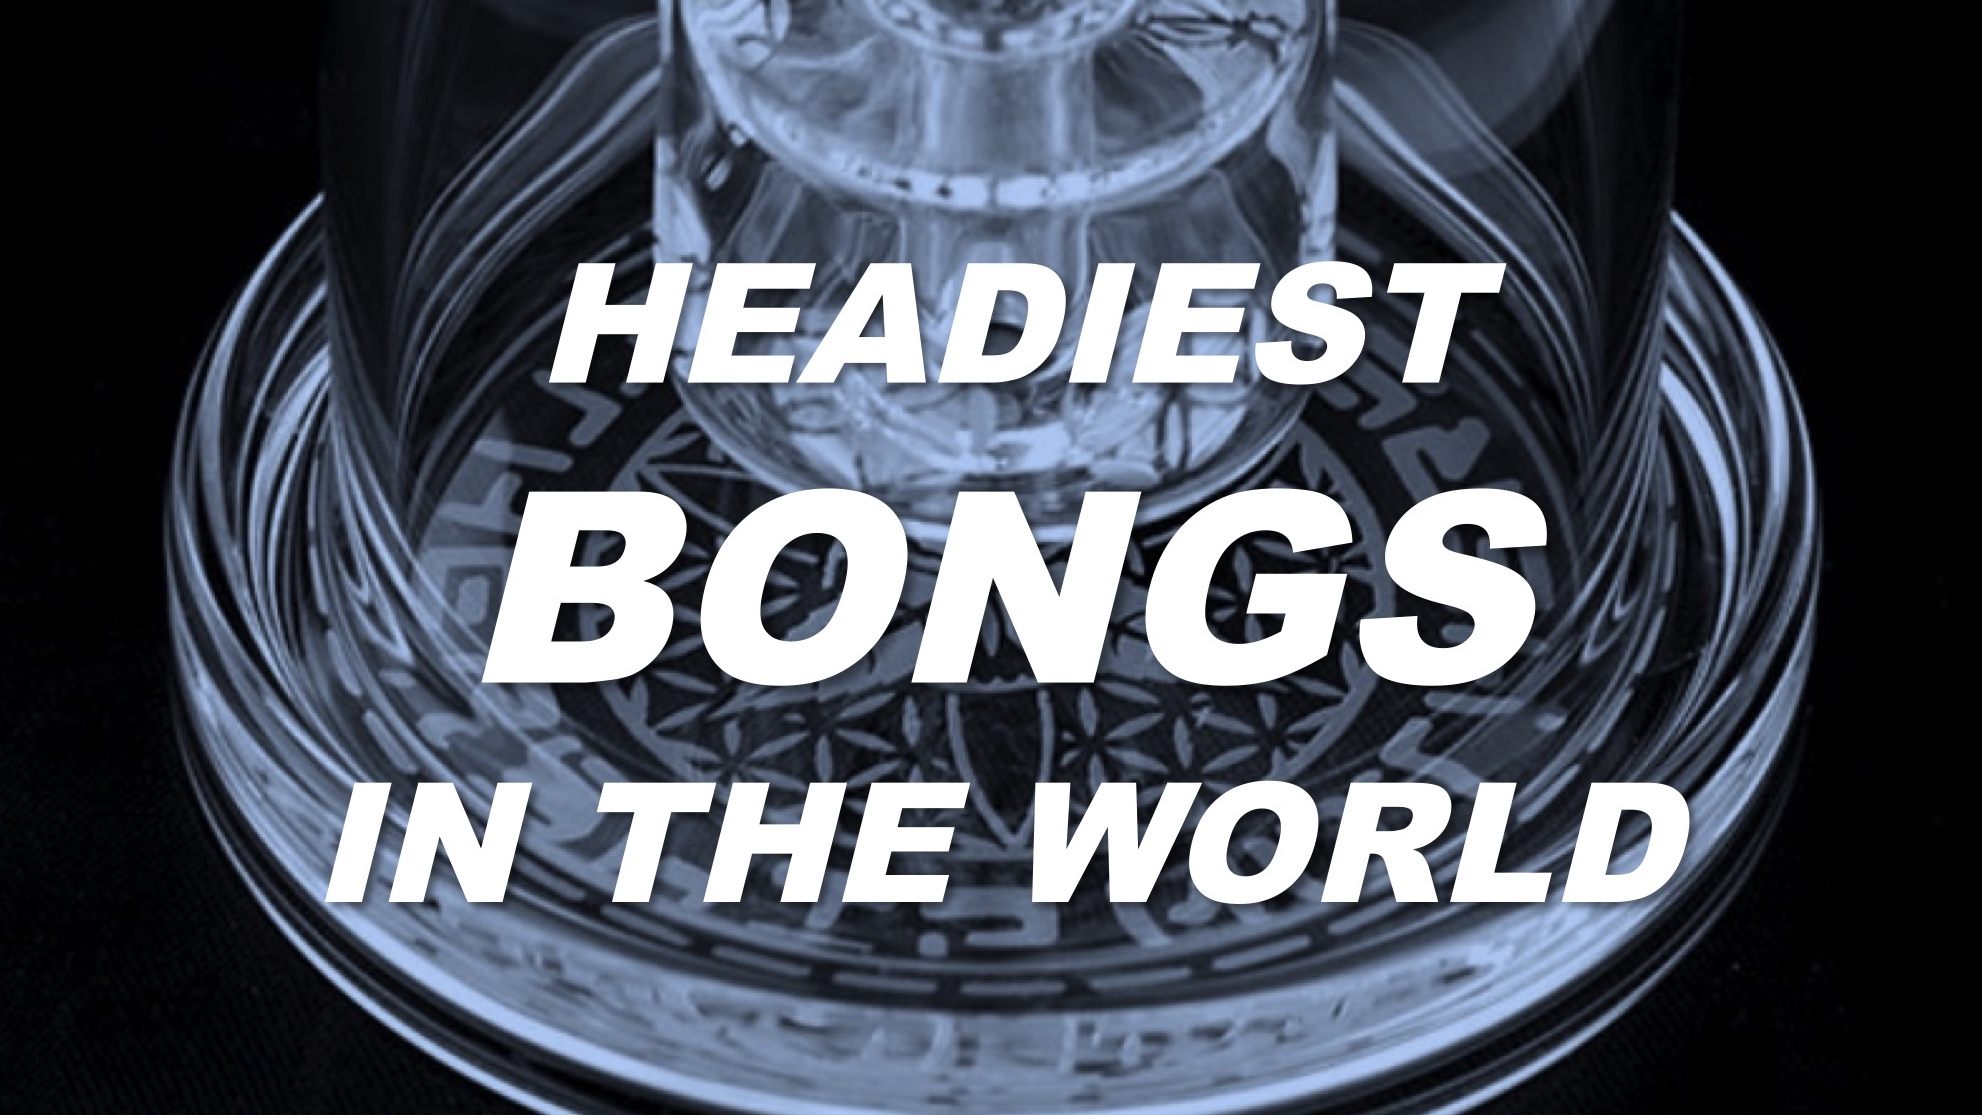 Headiest BONGS in the World by Cannabis Frontier